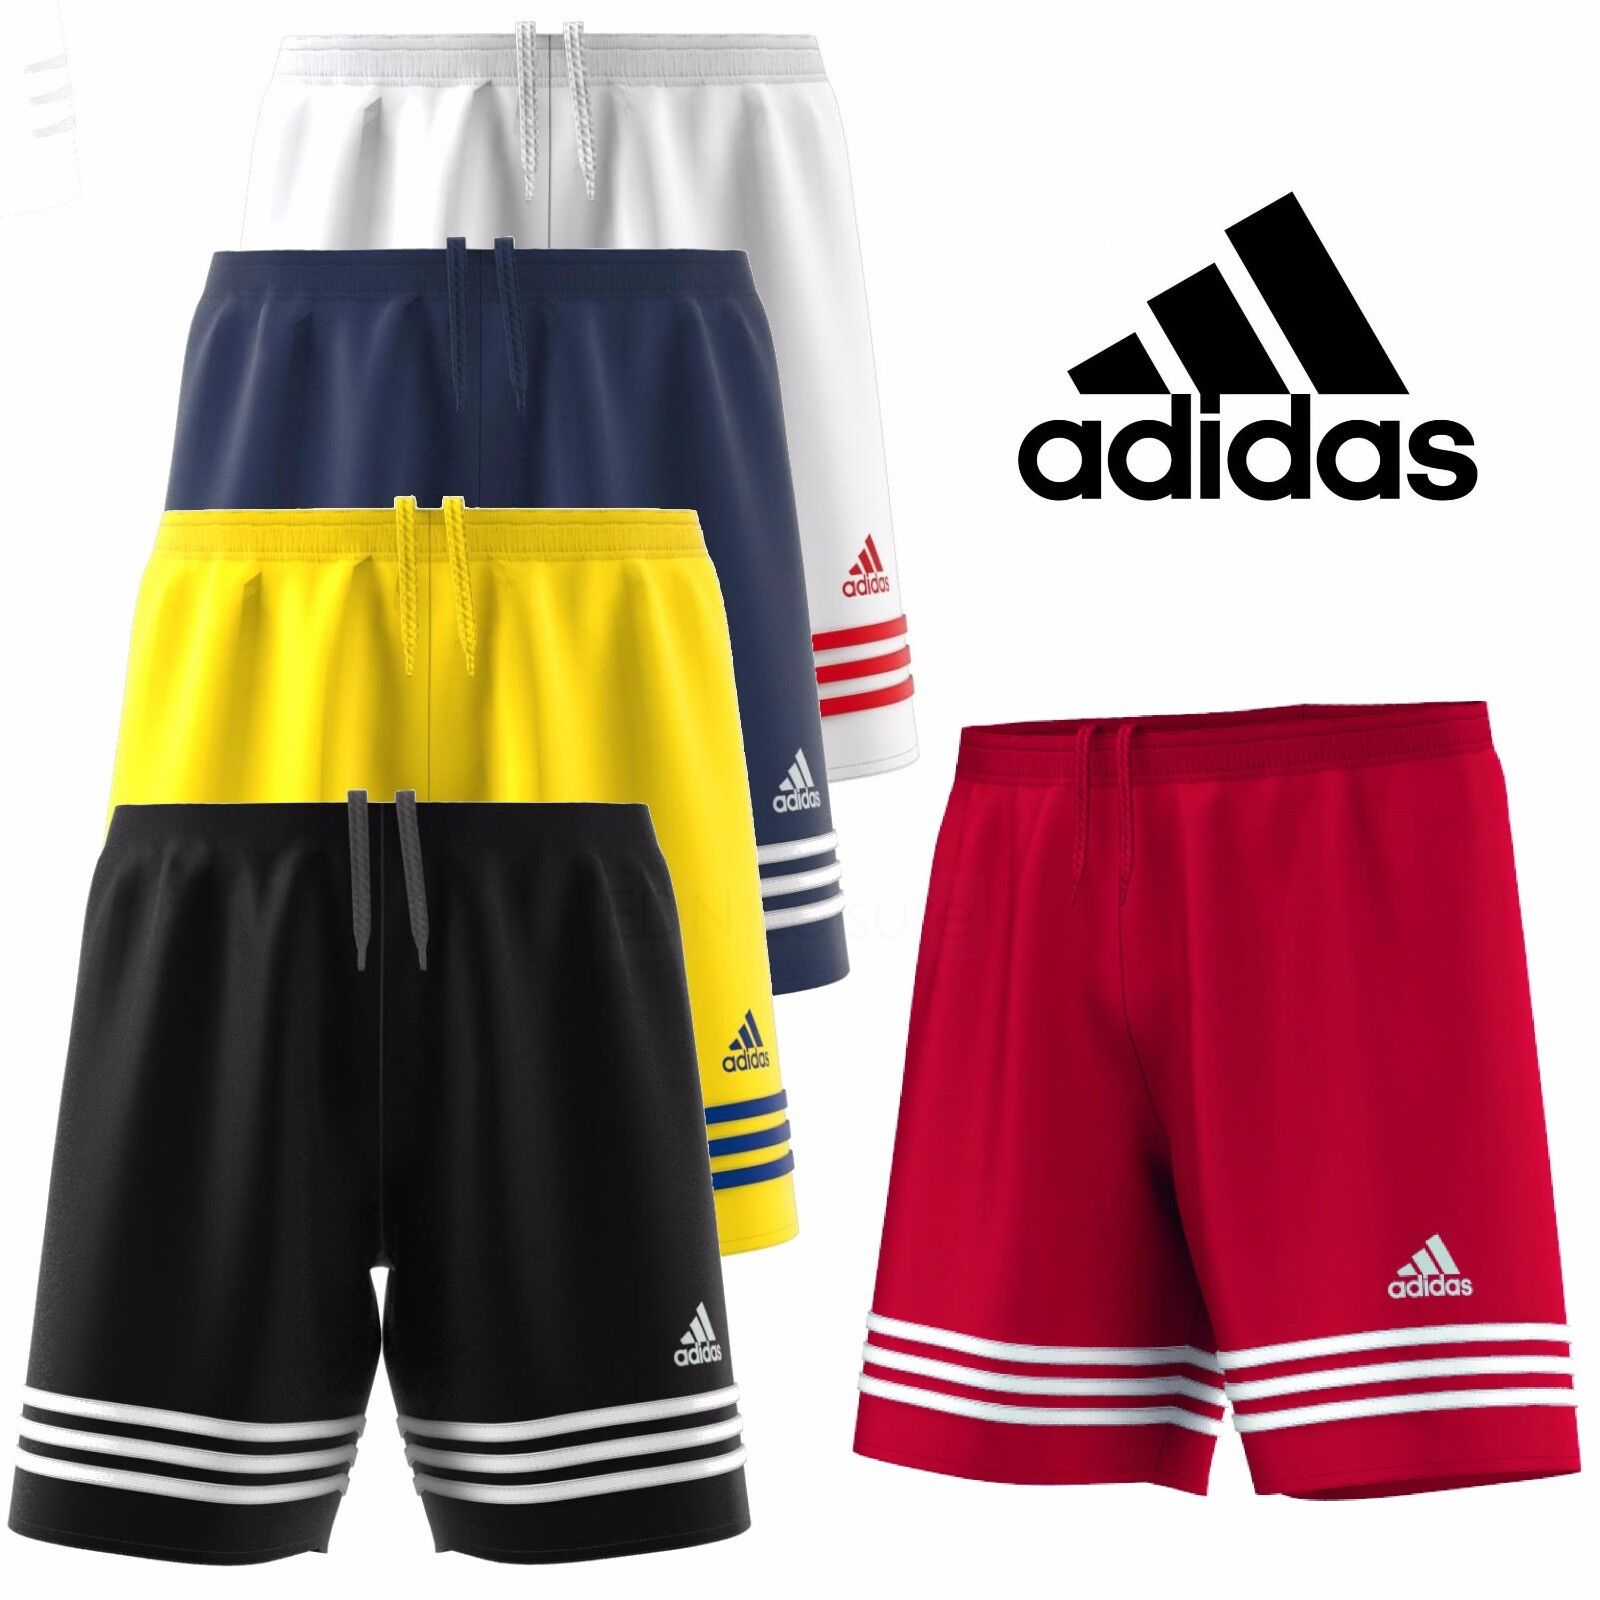 adidas mens shorts sports training entrada football. Black Bedroom Furniture Sets. Home Design Ideas